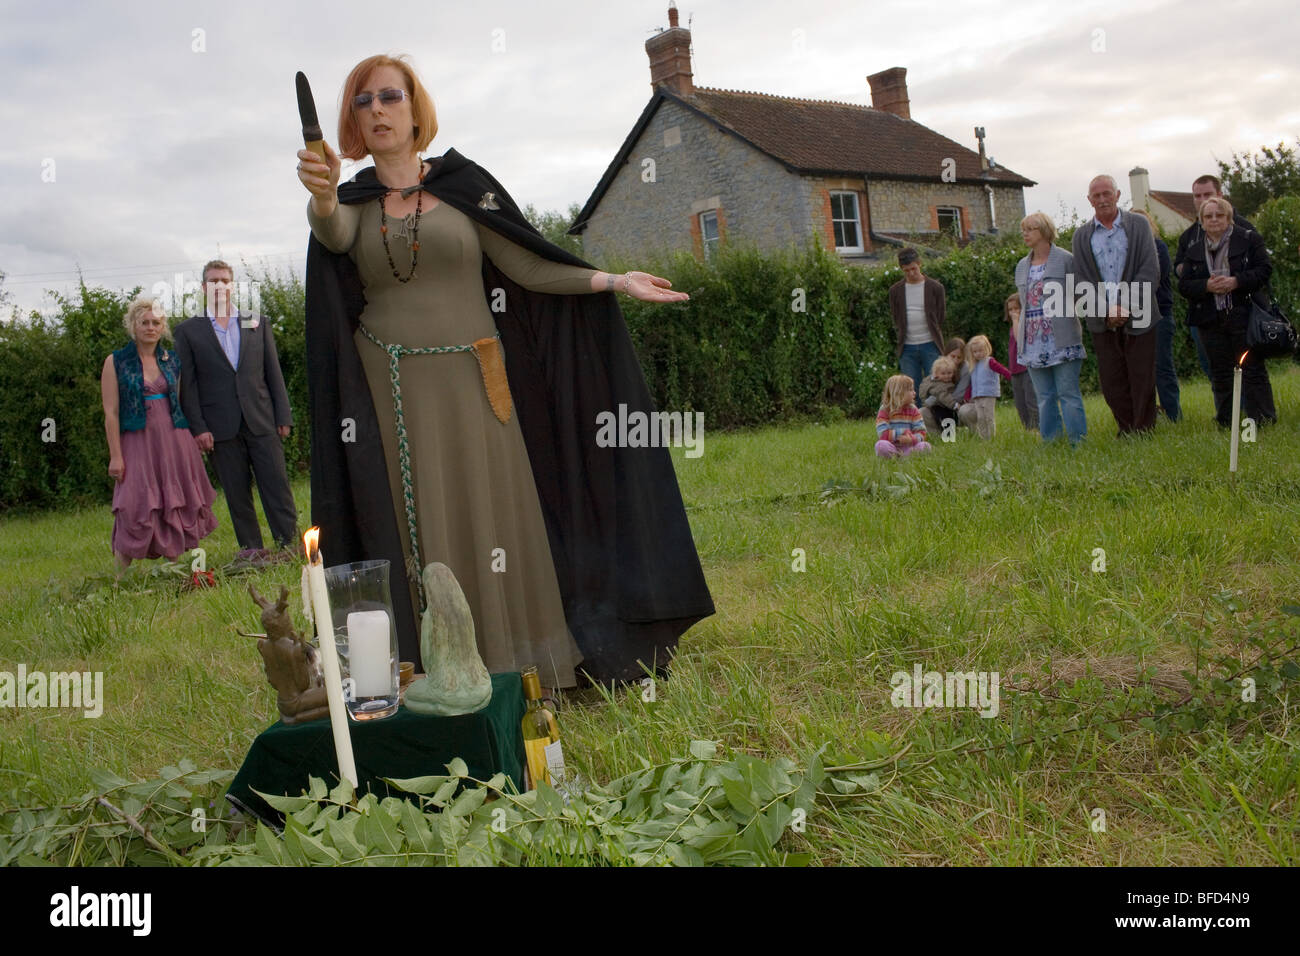 A witch in a black cloak holds a dagger up during a Pagan wedding ceremony in a field near Glastonbury in England. - Stock Image